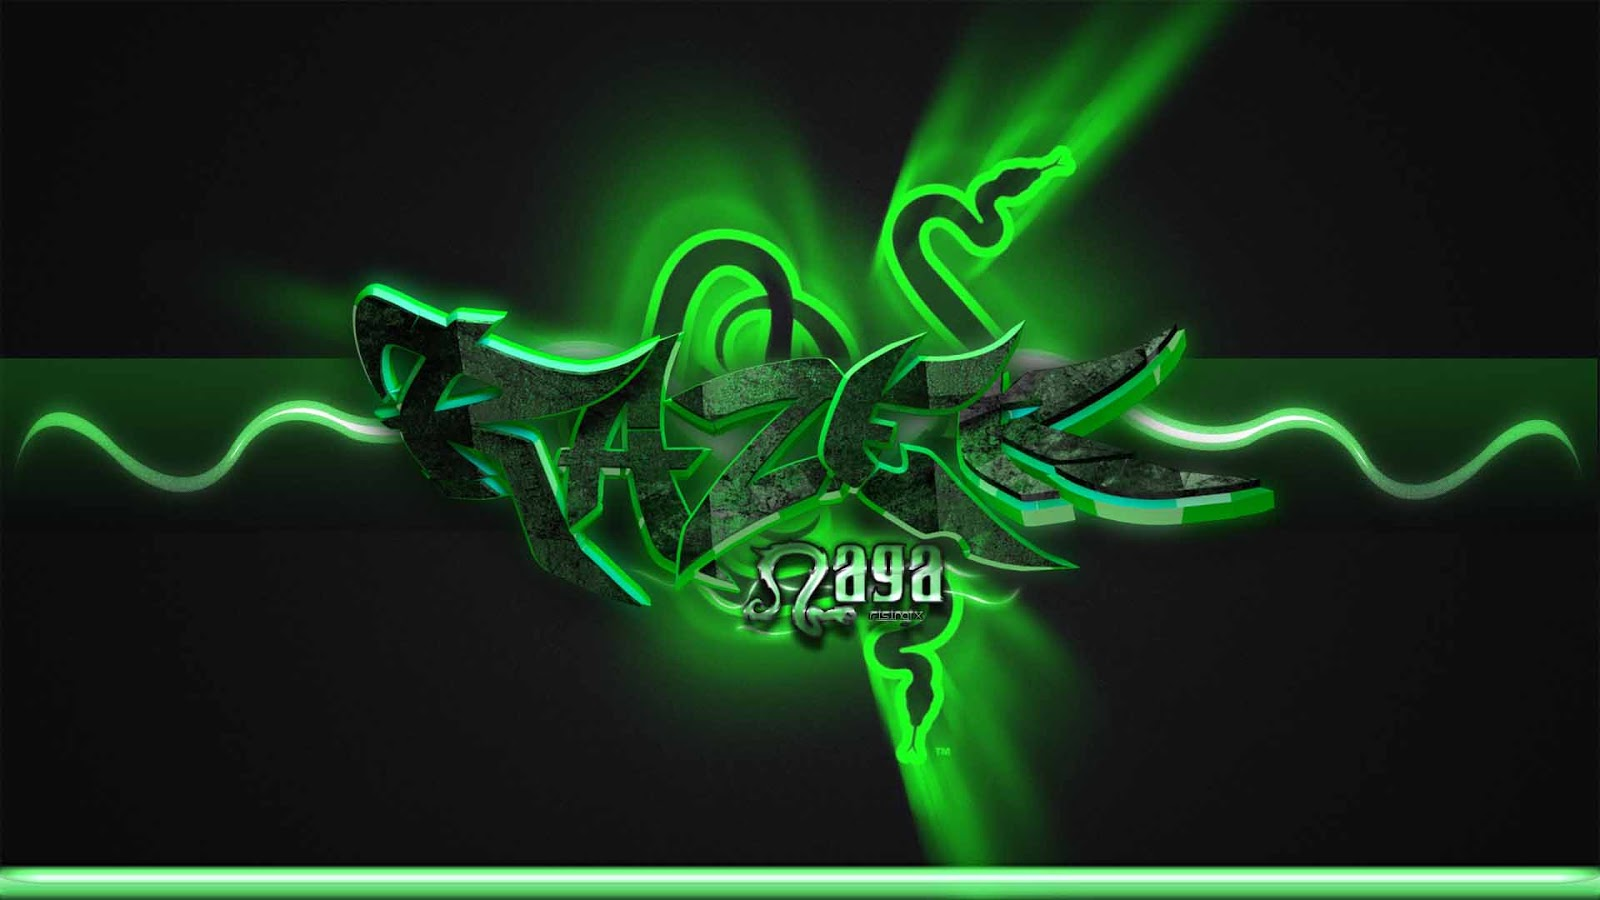 Razer Hd Wallpapers